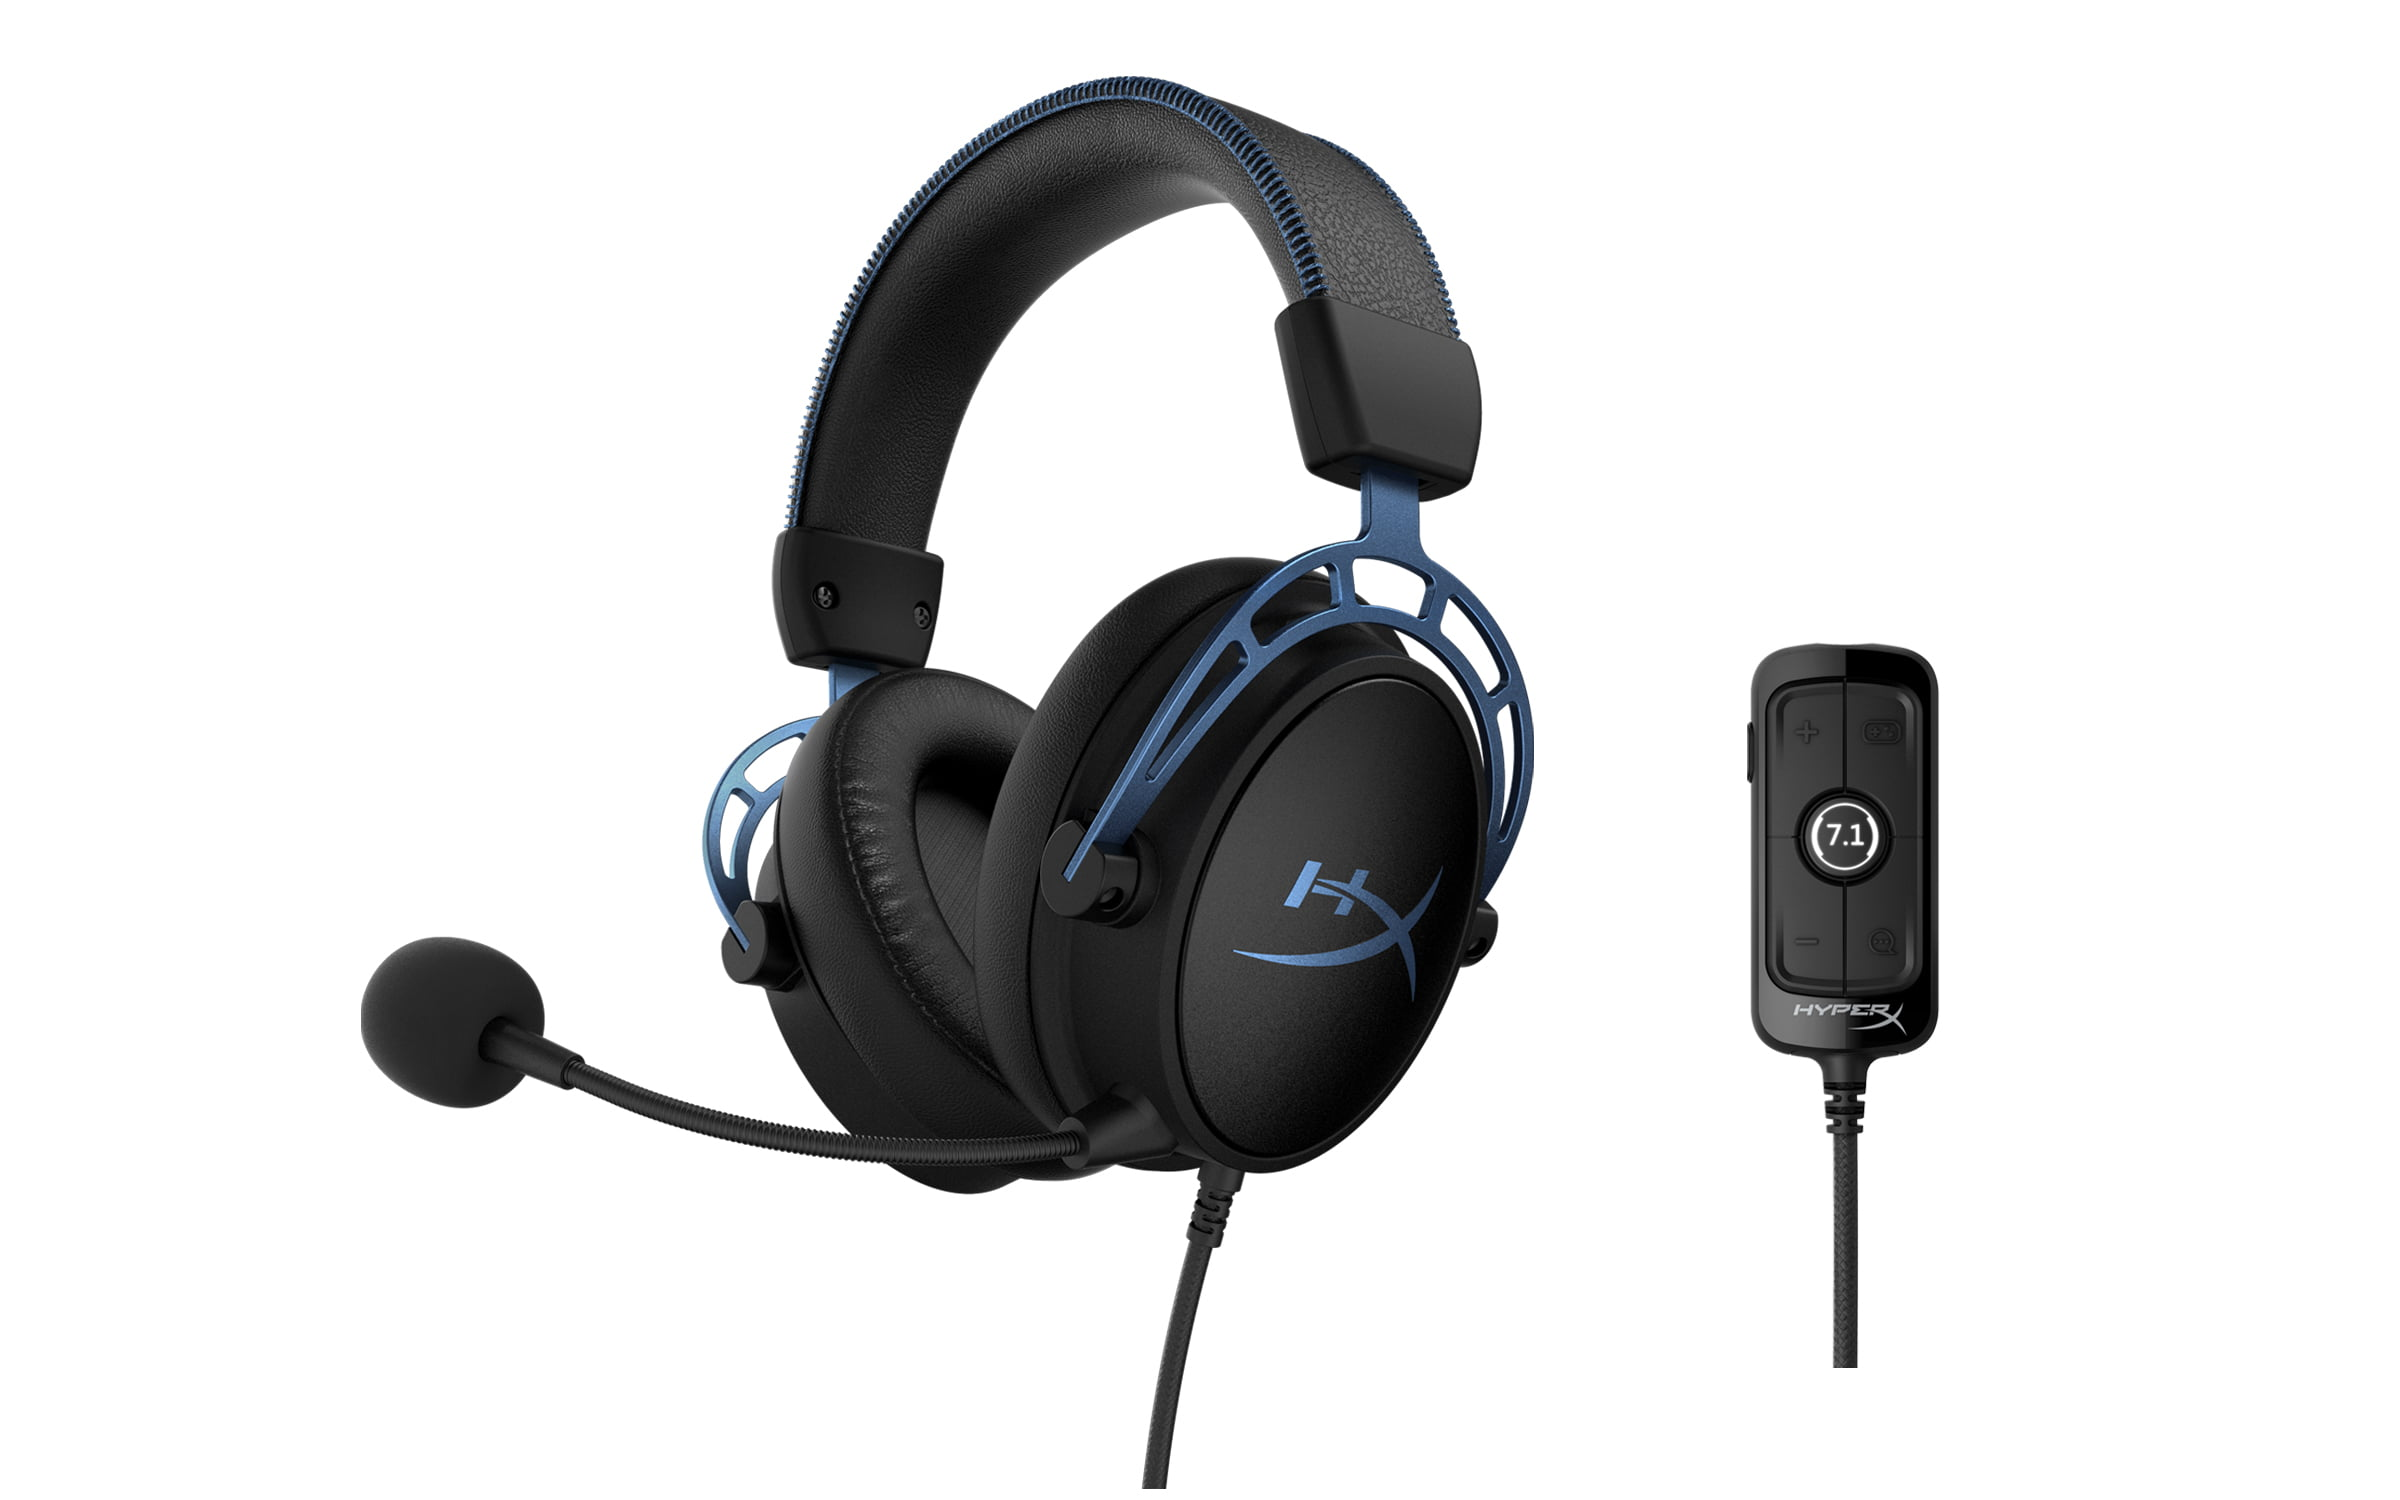 Hyperx Cloud Alpha S Gaming Headset For Pc 7 1 Surround Sound Adjustable Bass Dual Chamber Drivers Chat Mixer Breathable Leatherette Memory Foam And Noise Cancelling Microphone Walmart Com Walmart Com